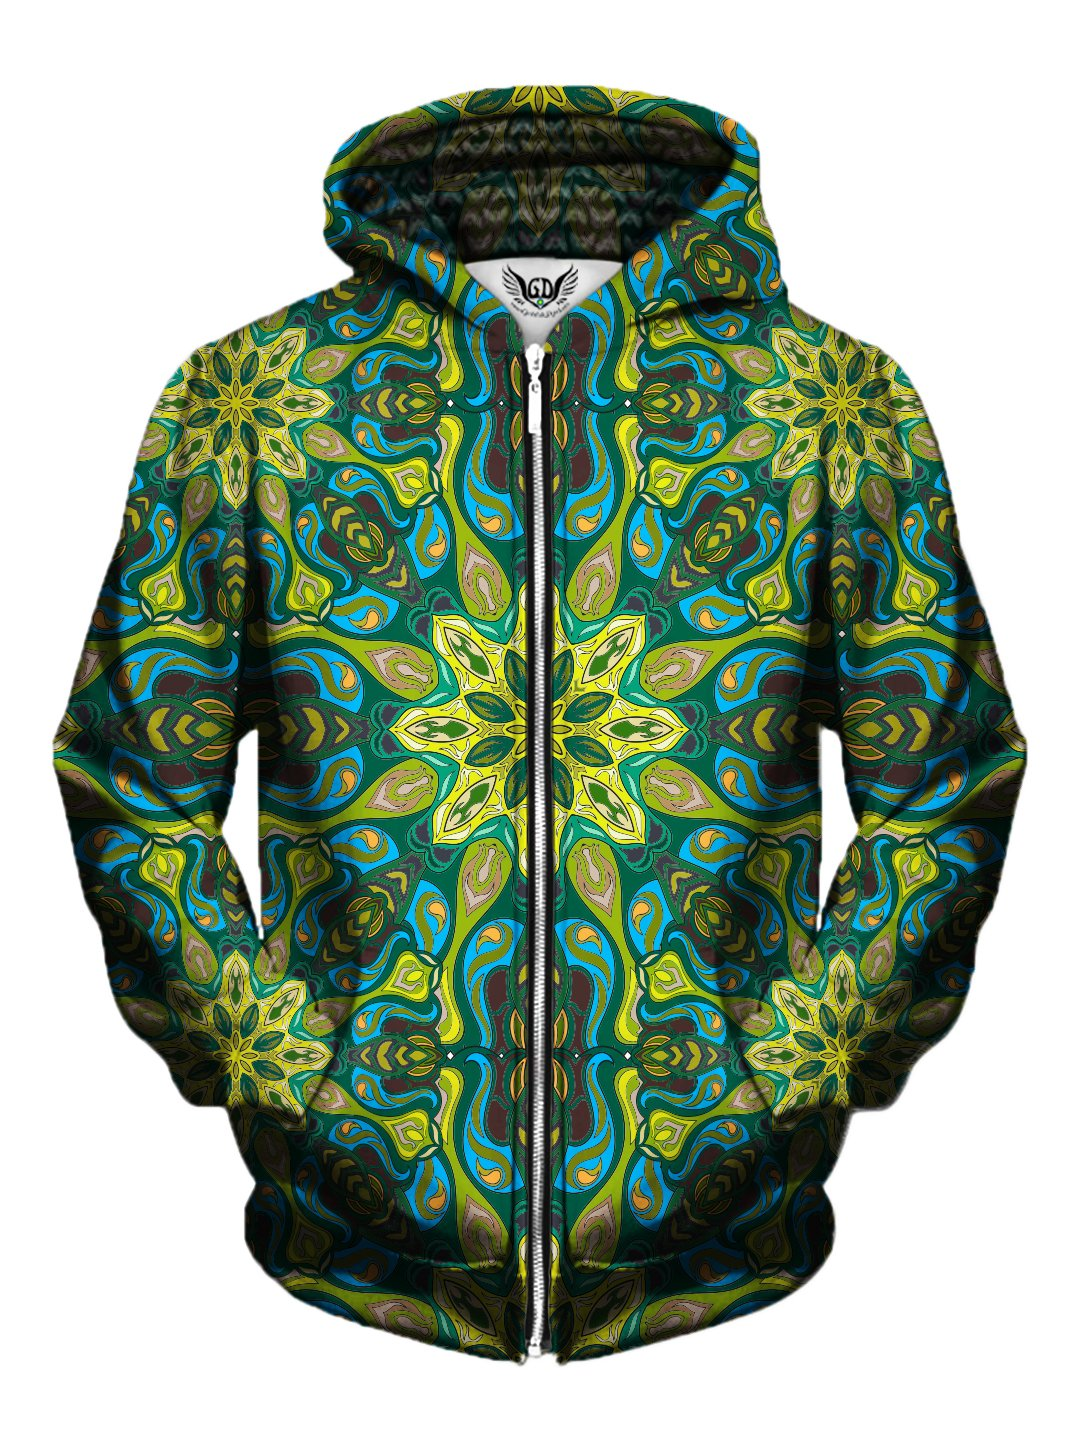 Men's green & blue psychedelic mandala zip-up hoodie front view.